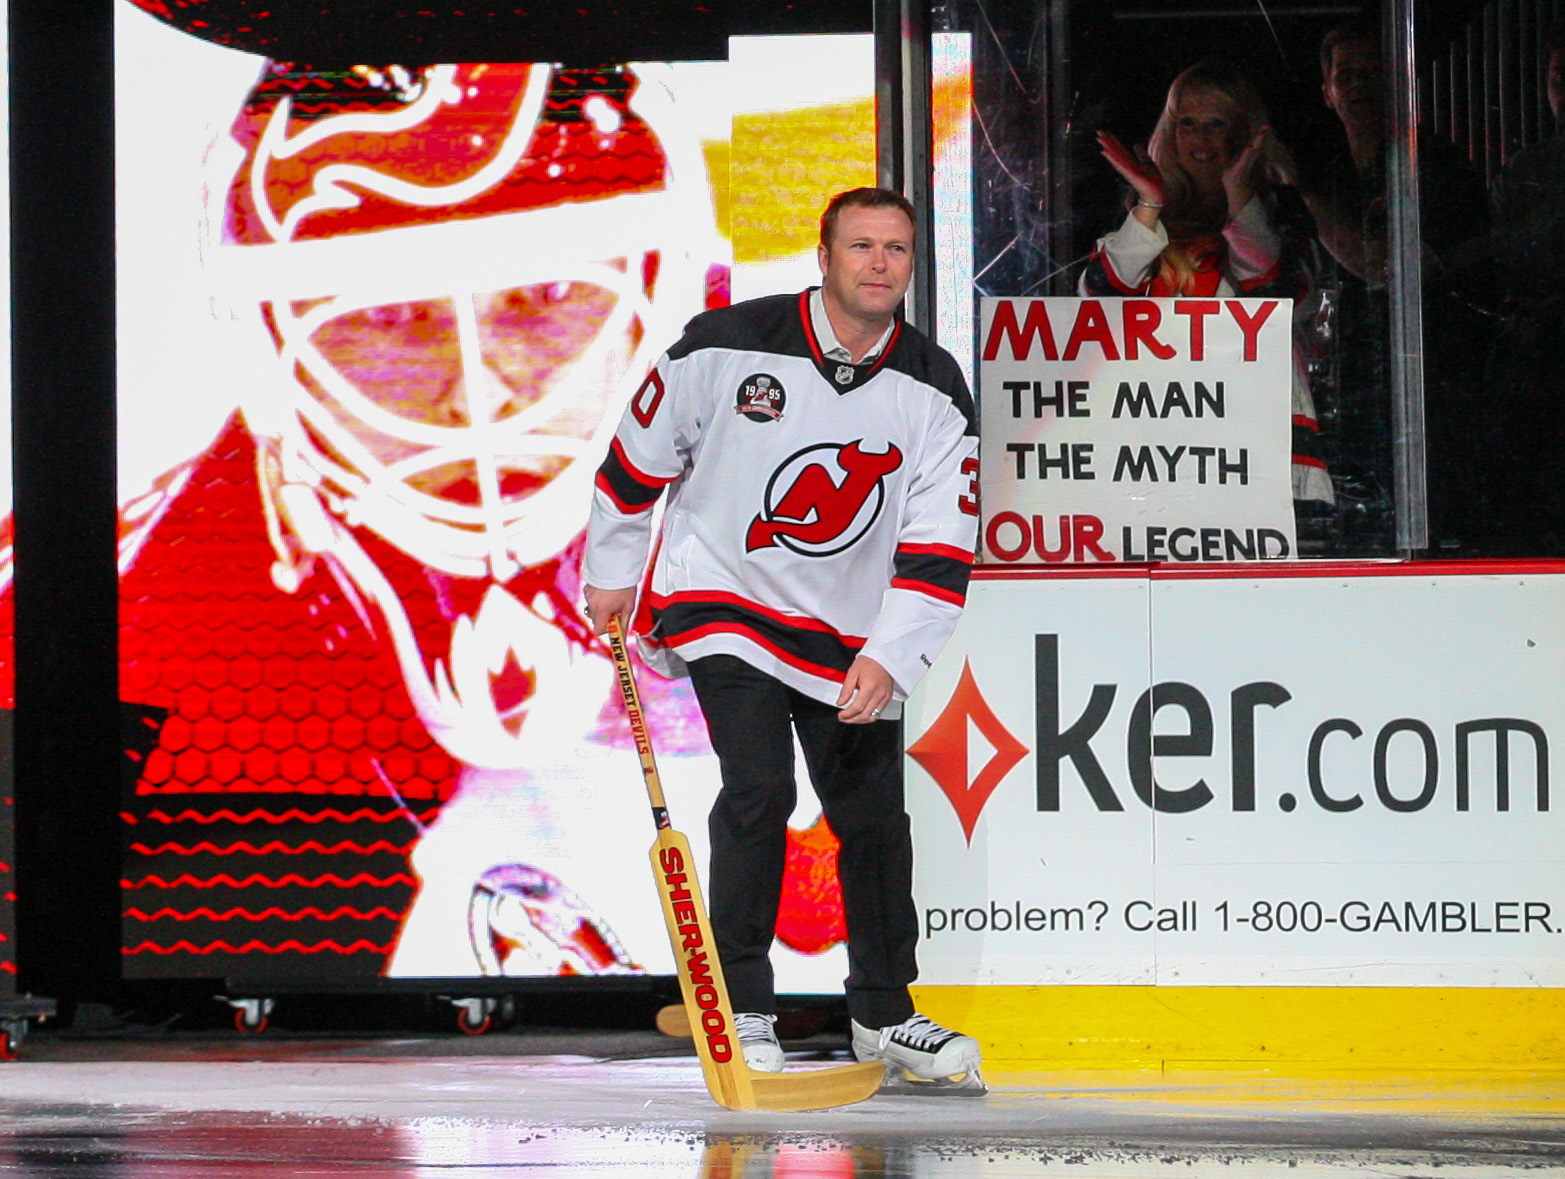 Martin Brodeur is indeed our legend.  He will have his number retired on February 9.